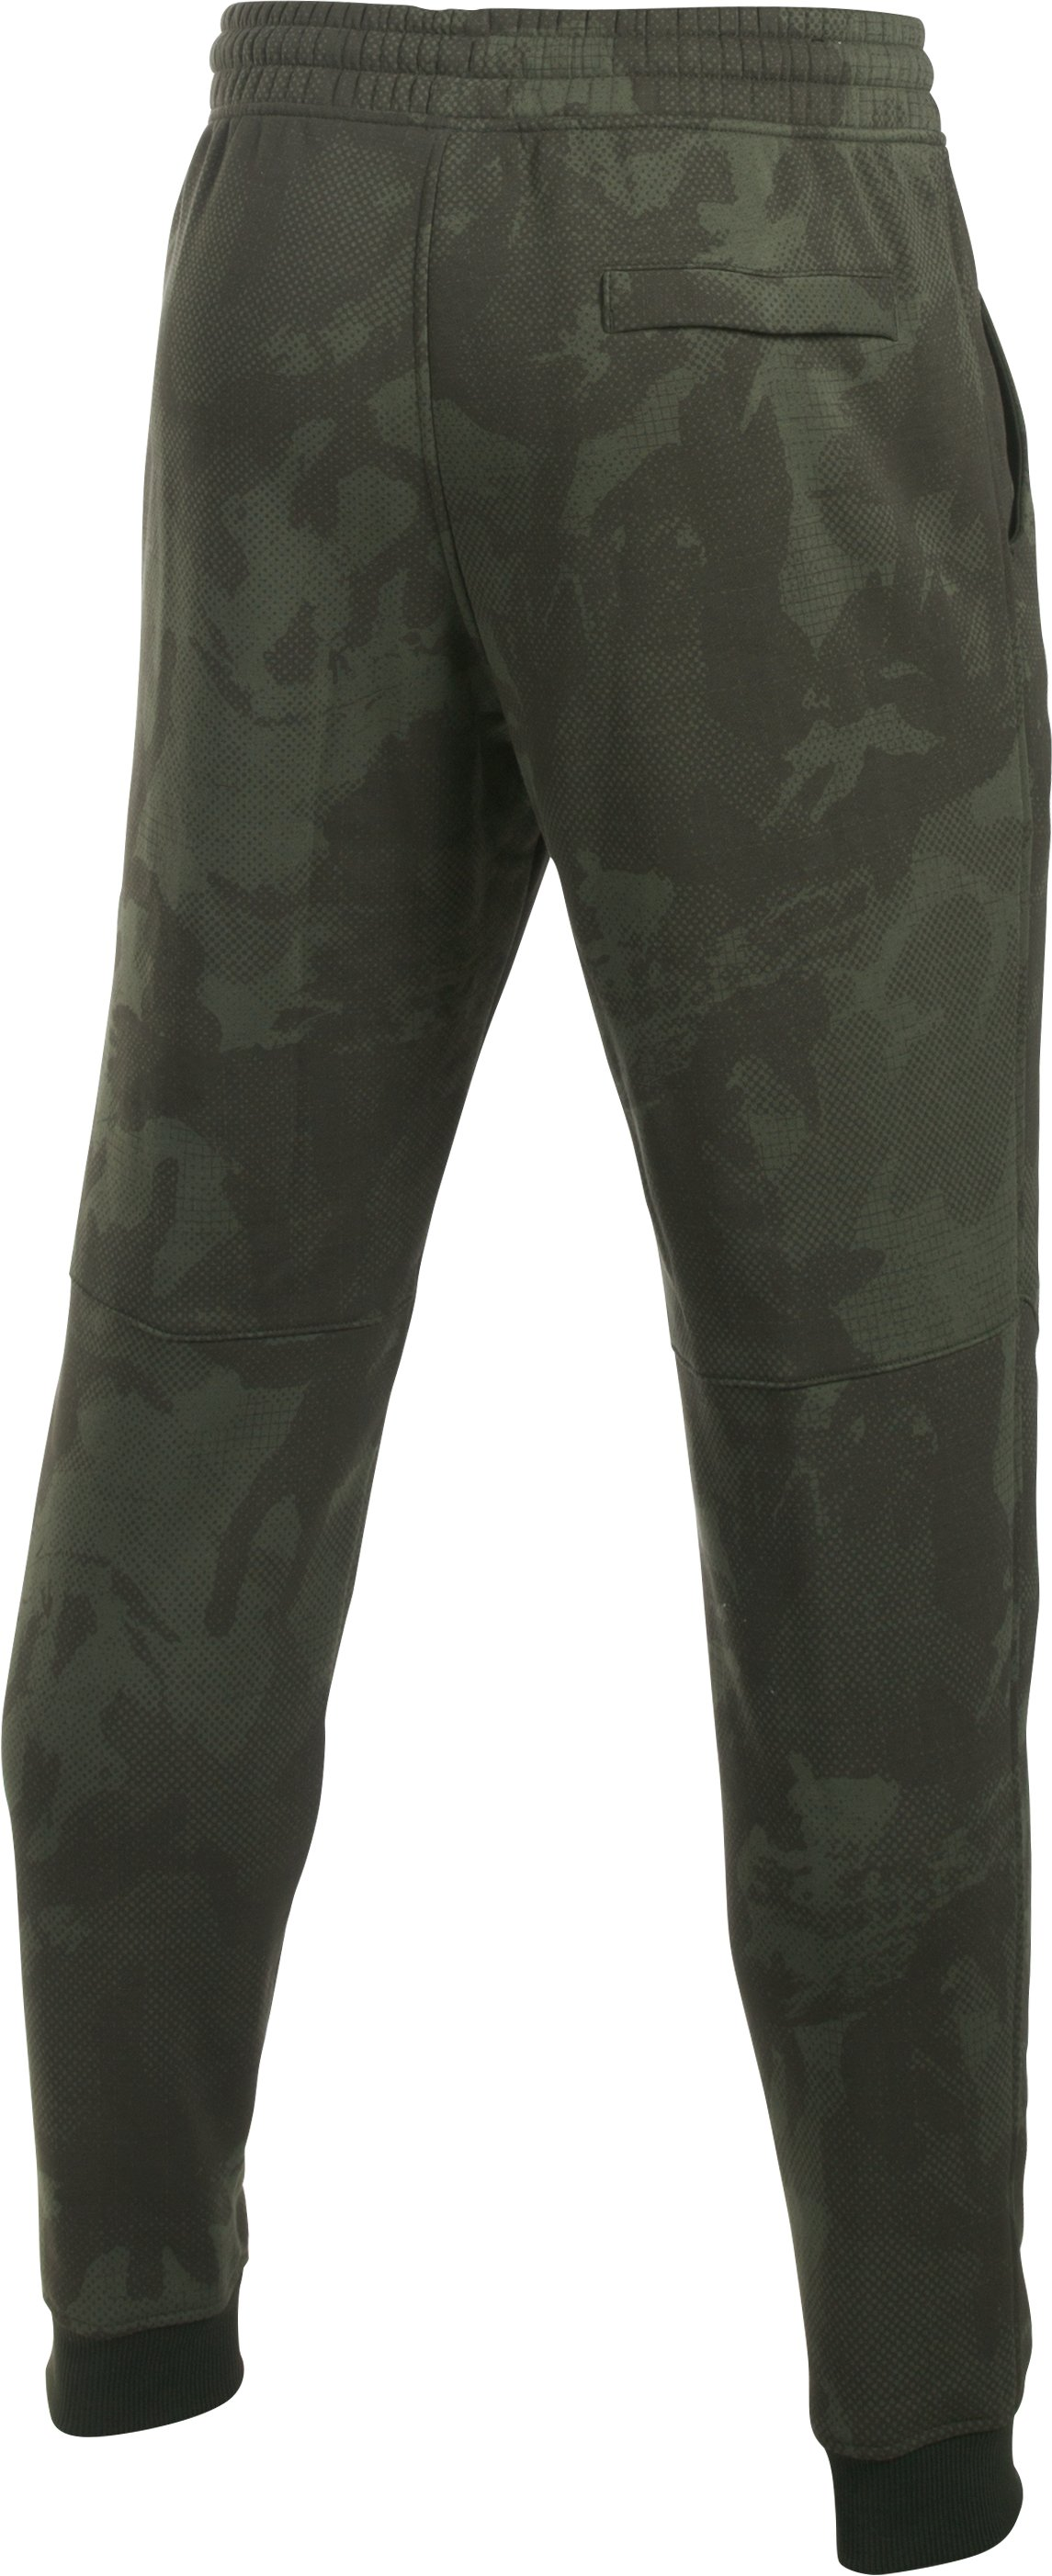 Men's UA Rival Fleece Patterned Joggers, Artillery Green,